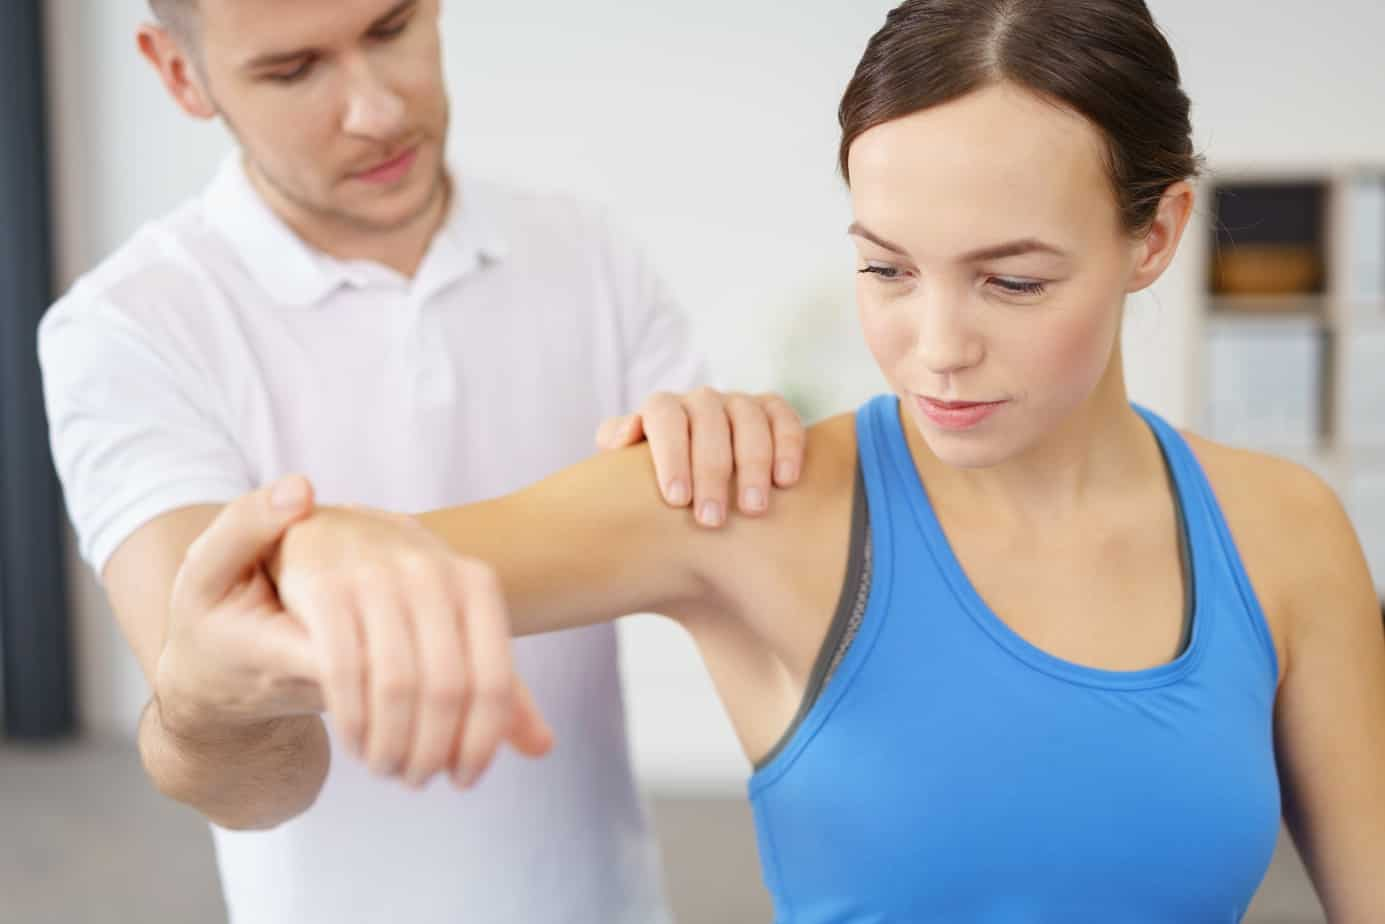 How Can Chiropractors Use Infrared in their Practice?